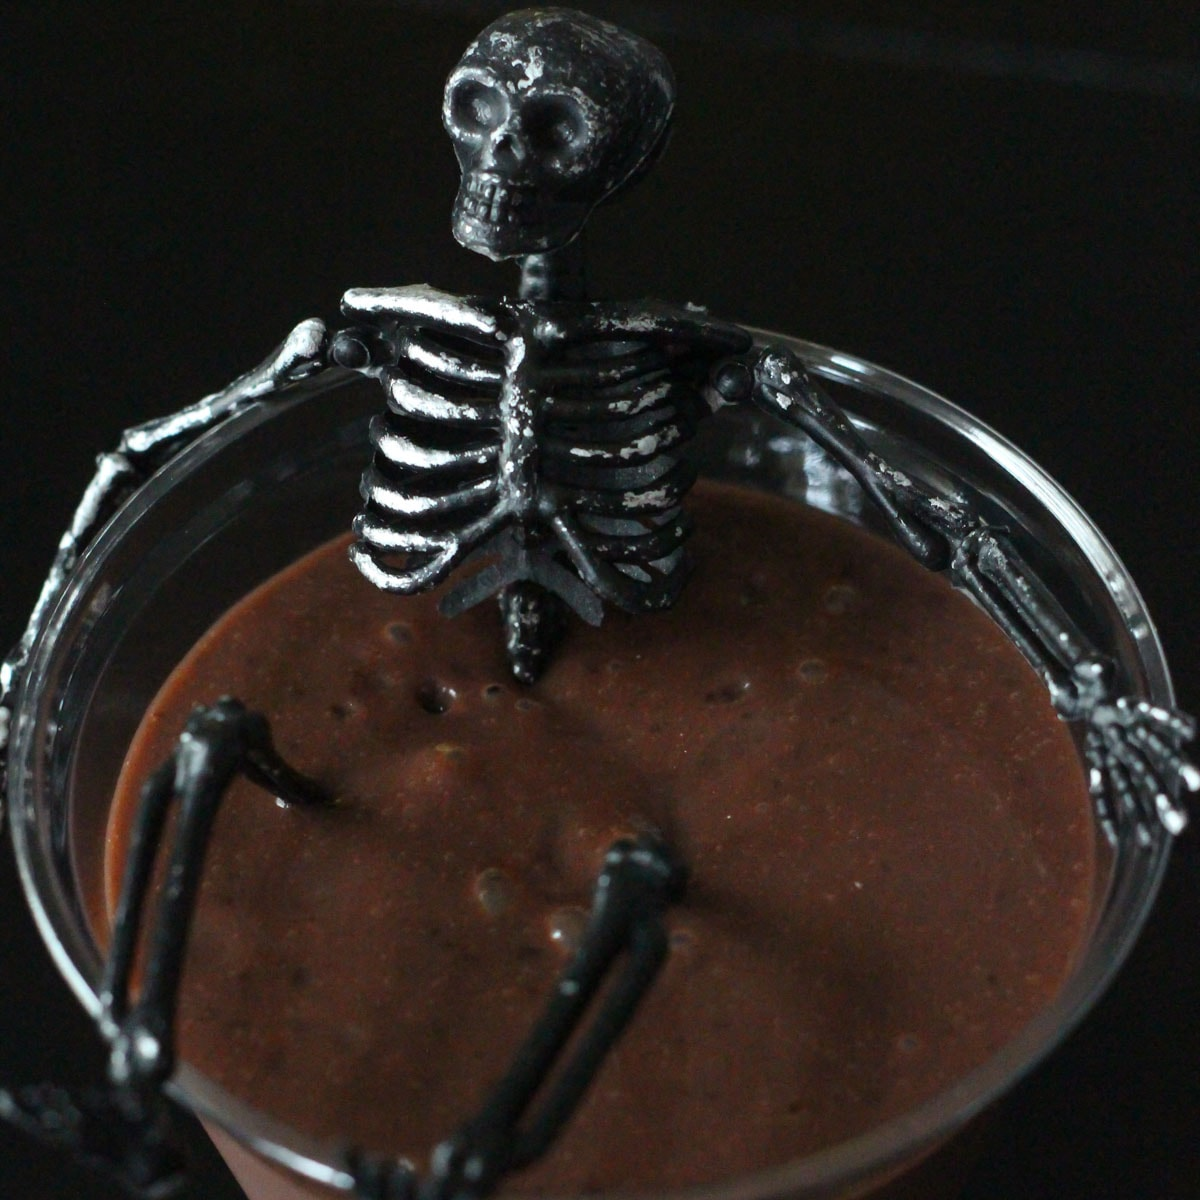 Black skeleton in chocolate pudding